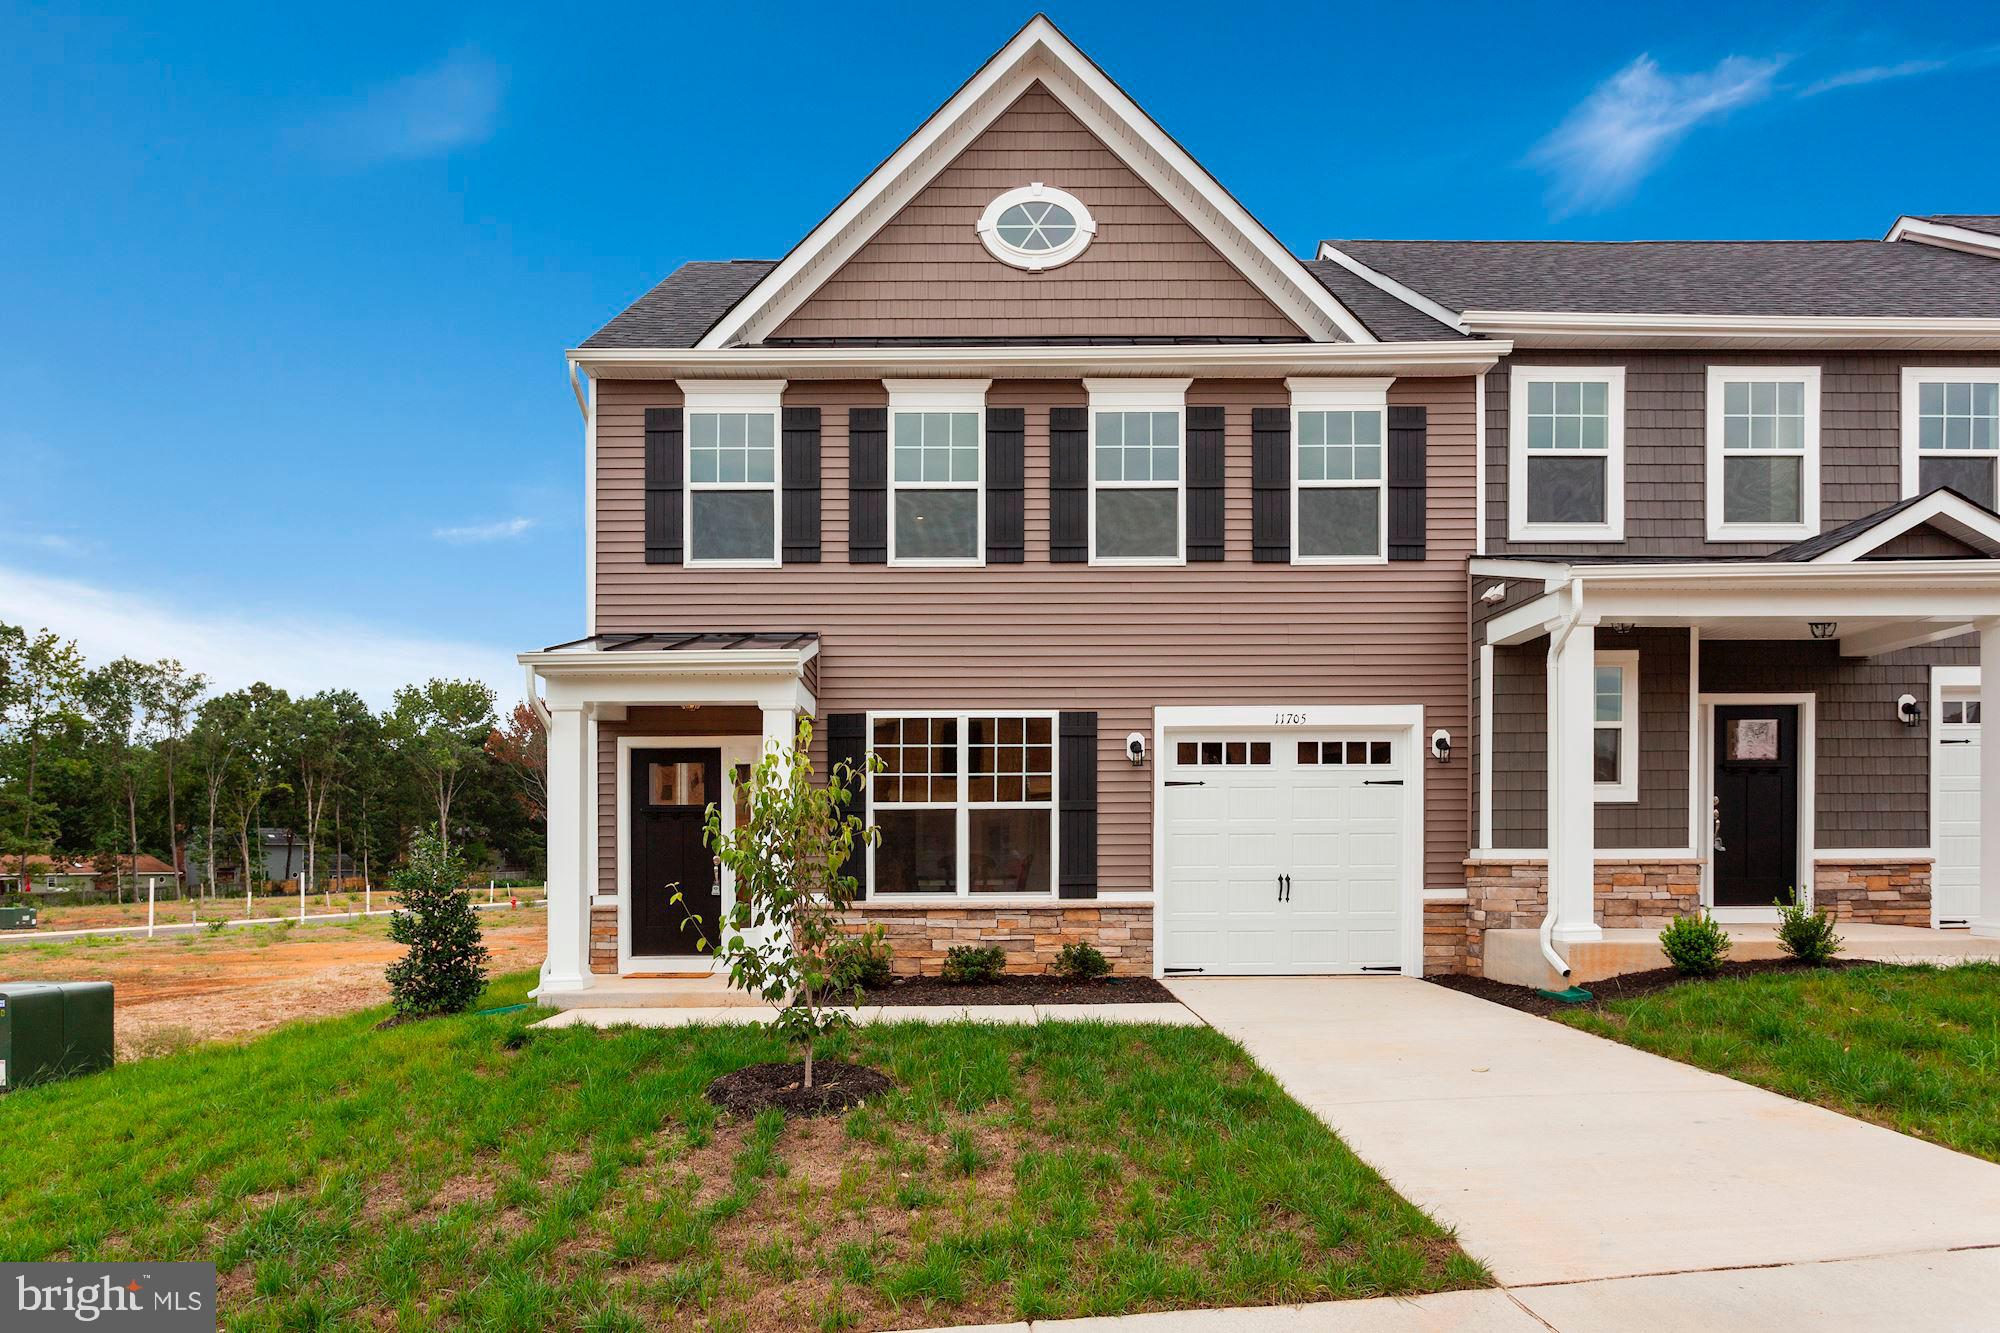 """Fabulous NEW 55+ Community just minutes from """"Everything Fredericksburg""""! You will LOVE our new Boutique Community. We have  Open, Modern, """"Main Floor Living"""" Floorplans that appeal to everyone! We only have 45 Home sites so you will need to make an appt sooner than later! Our Magnolia model  is 1925 square feet. Final prices will vary based on Options selected!  Every inch is usable and makes sense!  Our standards include: Stainless Steel Appliances, Gas Heat and Cooking, Gas Fireplace, Ceramic Primary Bath flooring and Shower, Granite Counters in the Kitchen , the list goes on! JGH Building & Consulting has a reputation for attention to detail, you will notice the difference when you tour our homes! The pictures are of our model home, options will vary in the Villas being built!"""